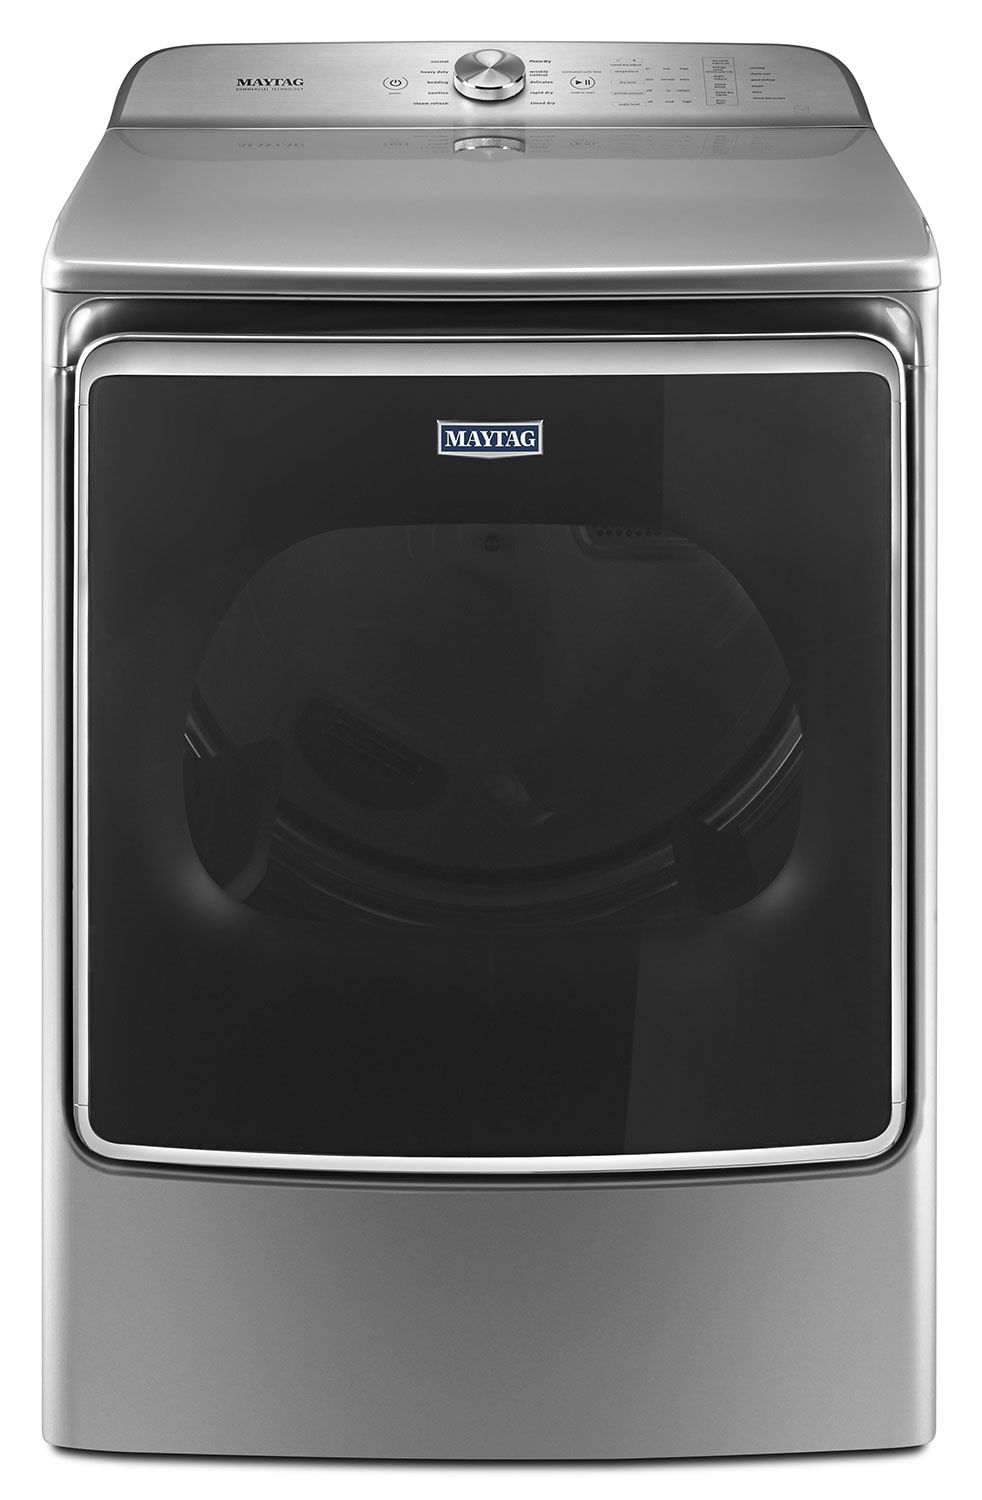 Washers and Dryers - Maytag 9.2 Cu. Ft. Electric Dryer – YMEDB955FC